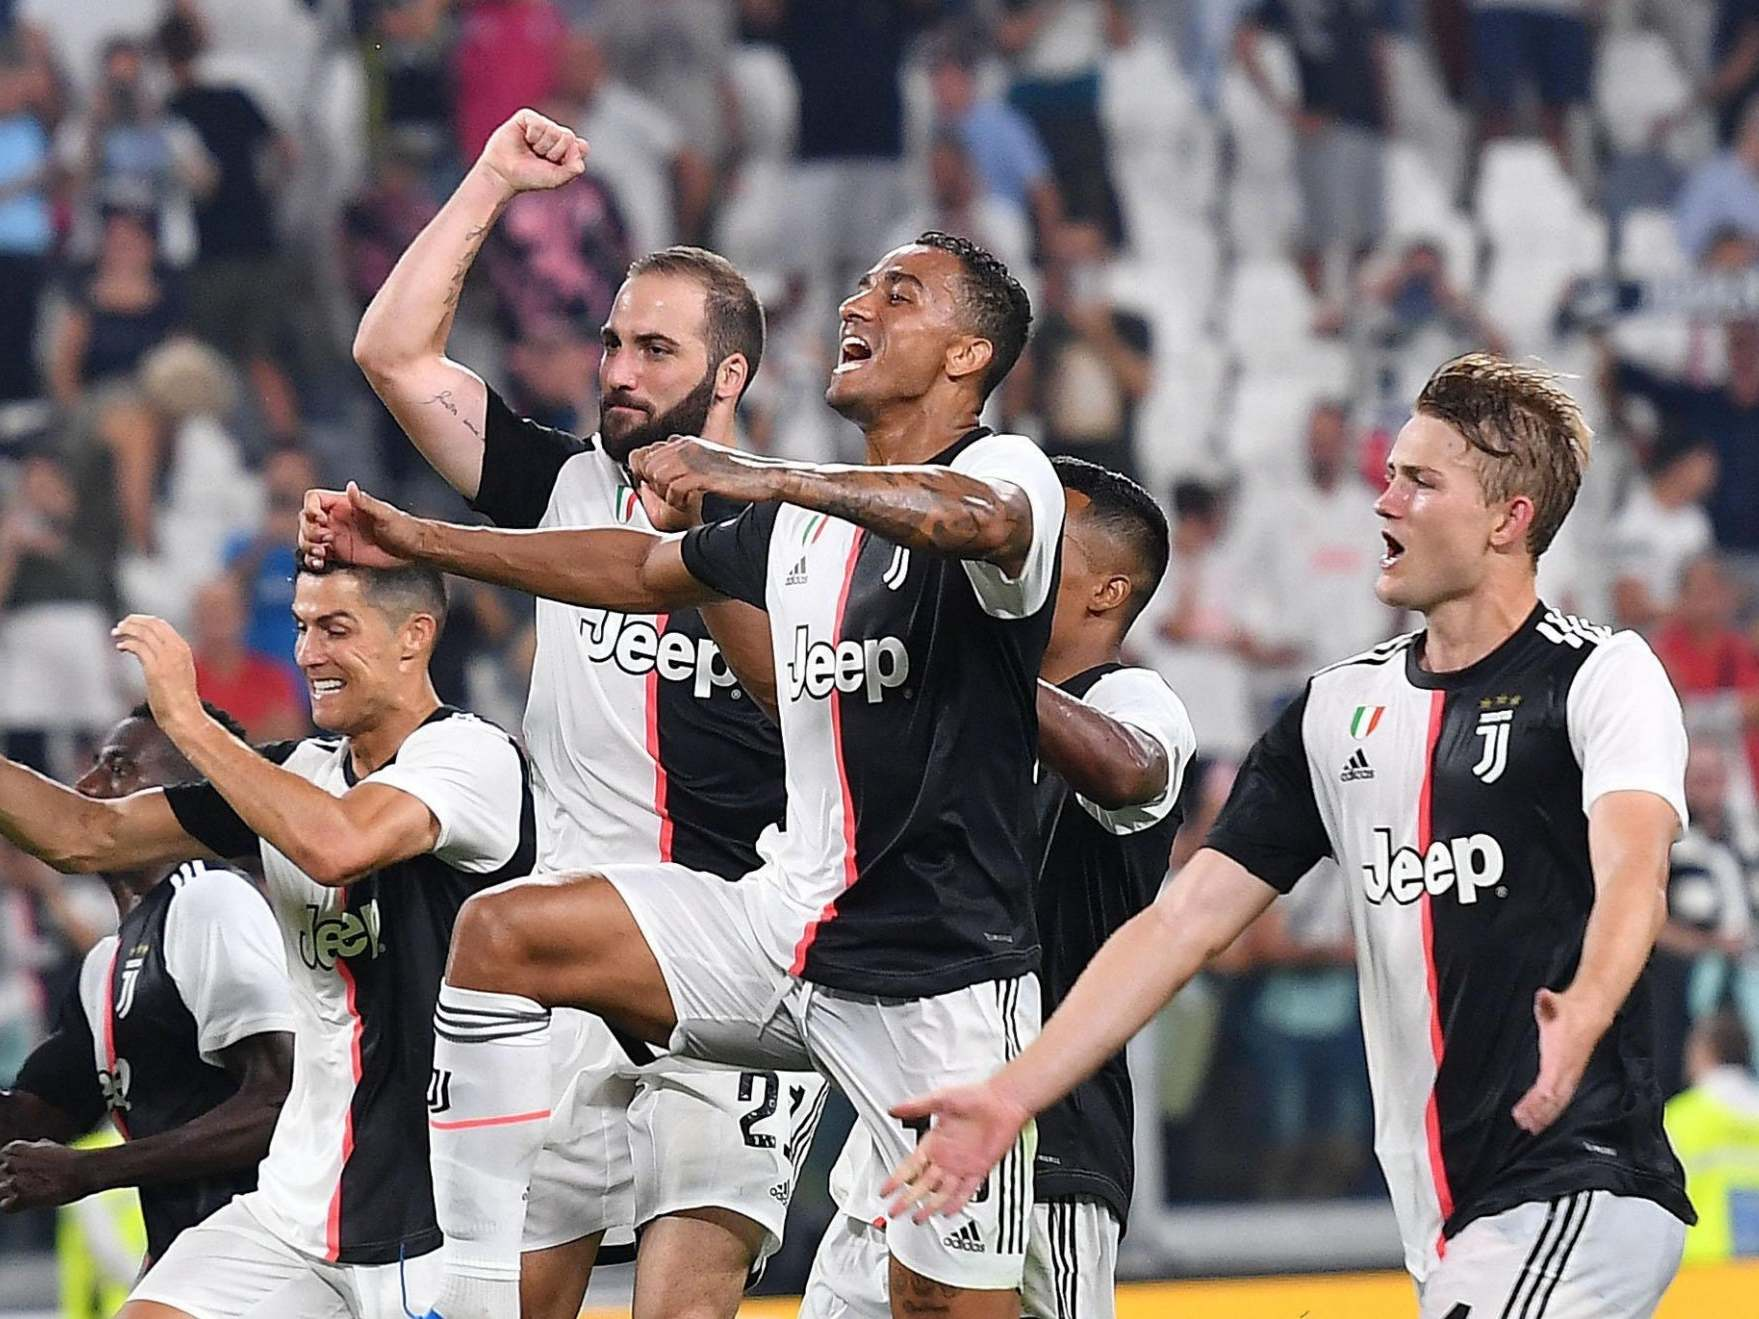 Juventus Vs Napoli Giovanni Martusciello Hails Never Give Up Attitude After Securing Last Gasp Win Against Title Rivals The Independent The Independent